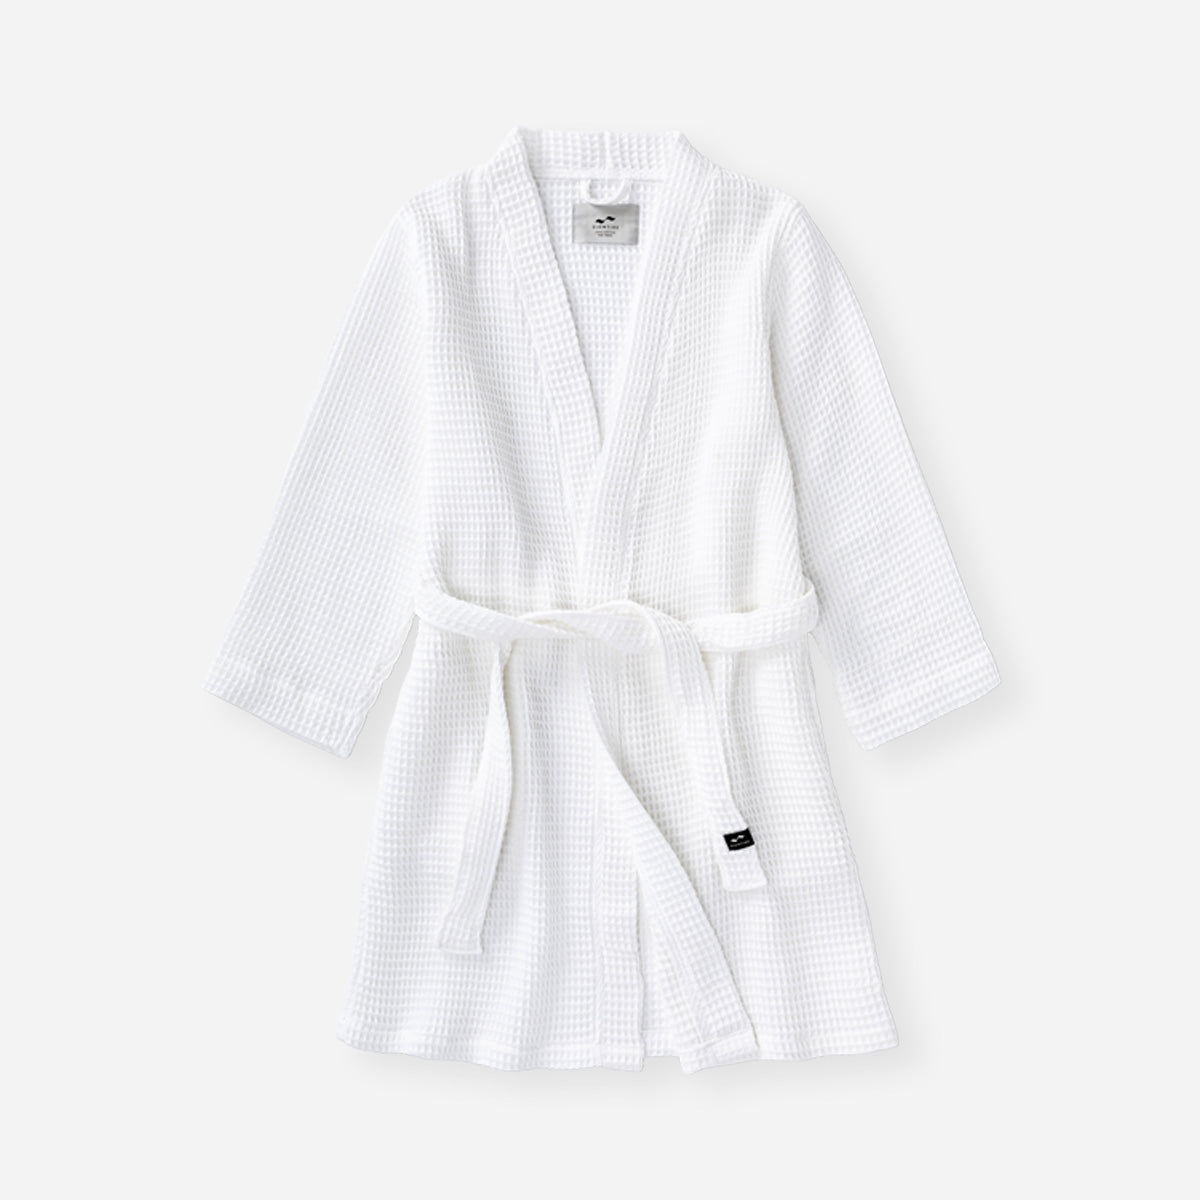 Guild Bath Robe - White - Large / XL